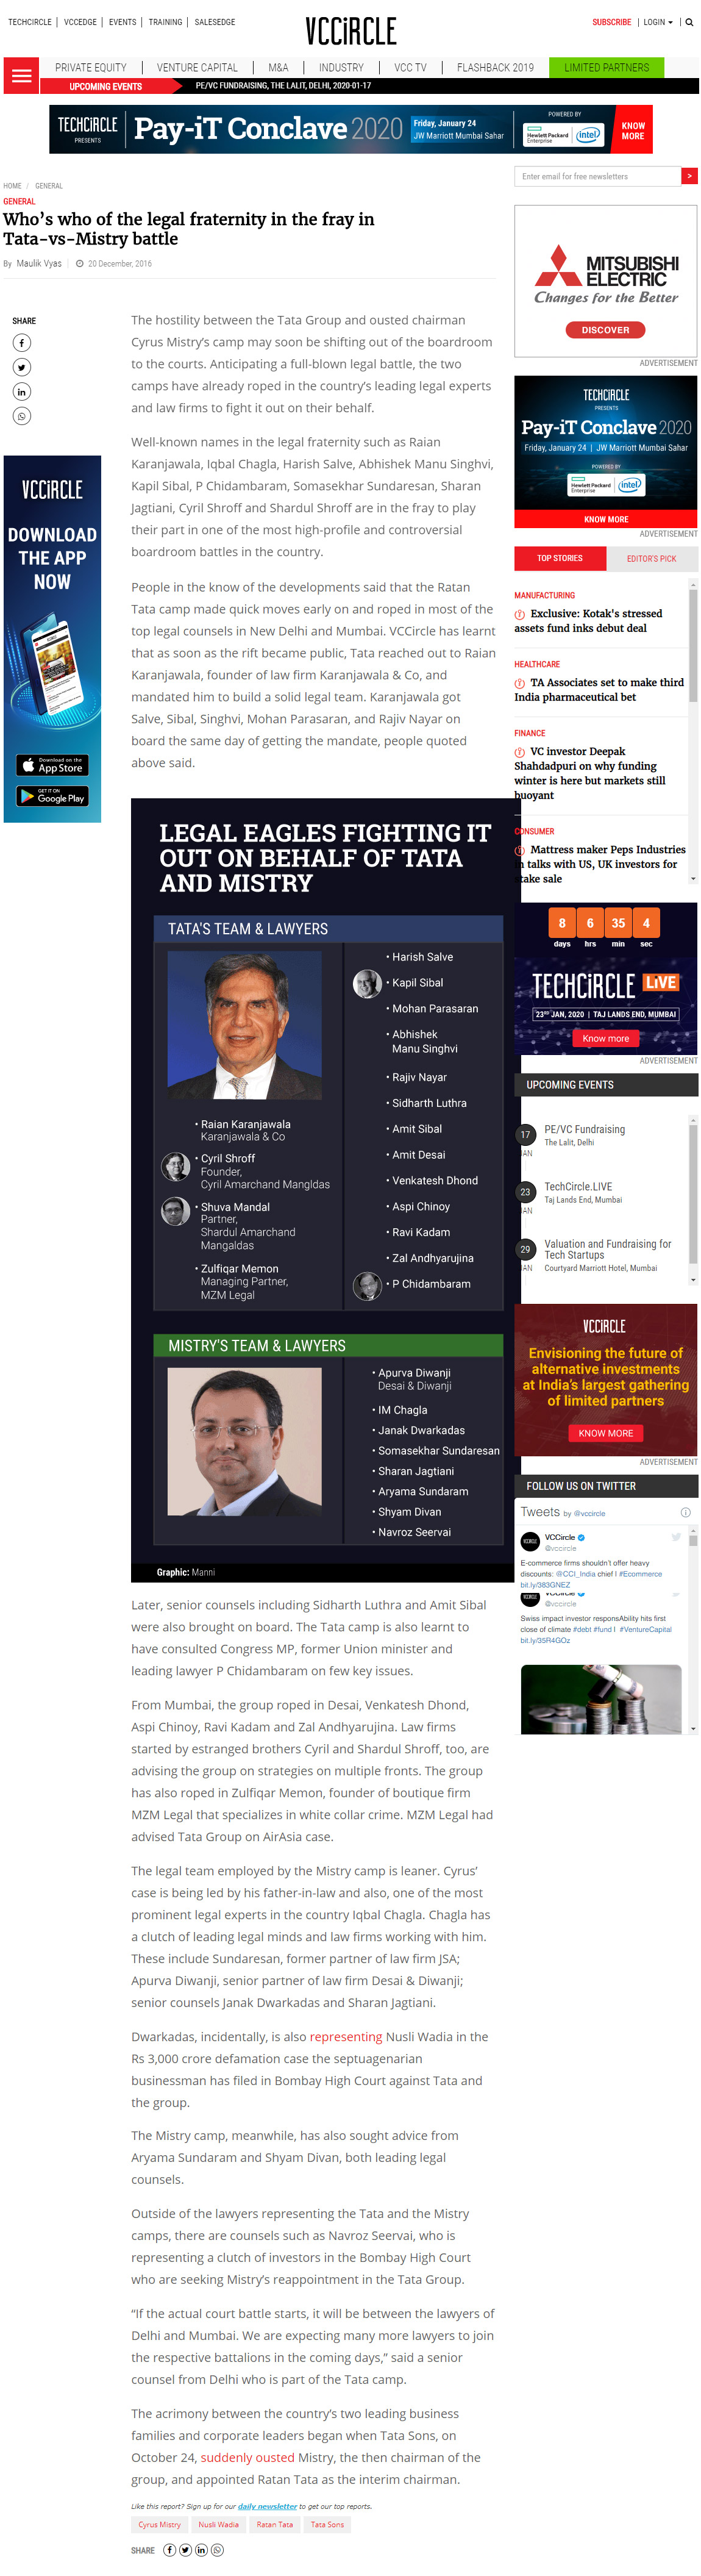 Who's who of the legal fraternity in the fray in Tata-vs-Mistry battle